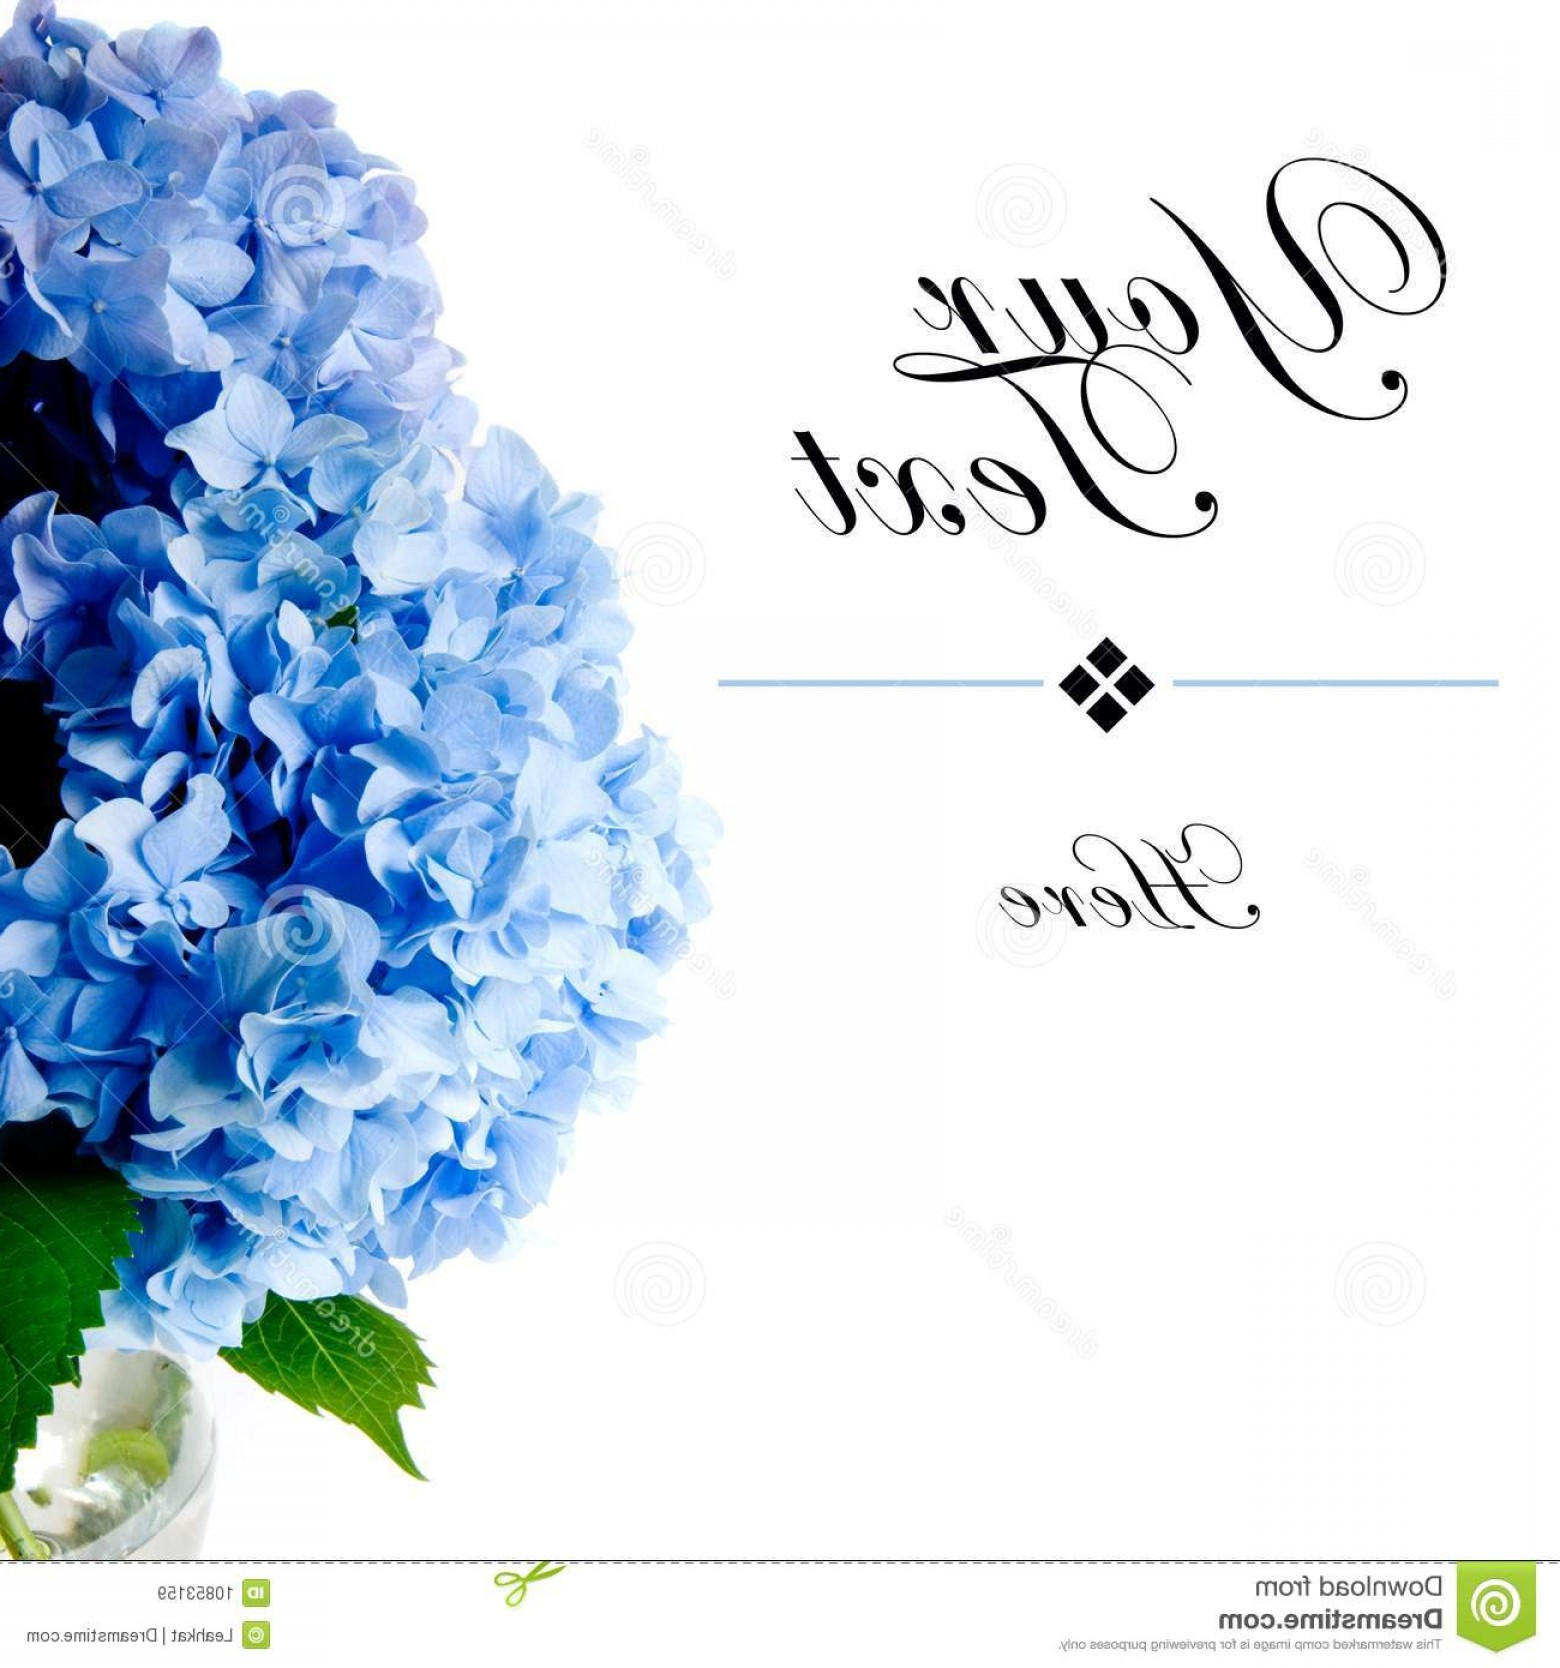 Hydrangea Vector Graphics: Stock Illustration Illustration Beautiful Watercolor Blue Hydrangea Flowers Bouquet White Background Image